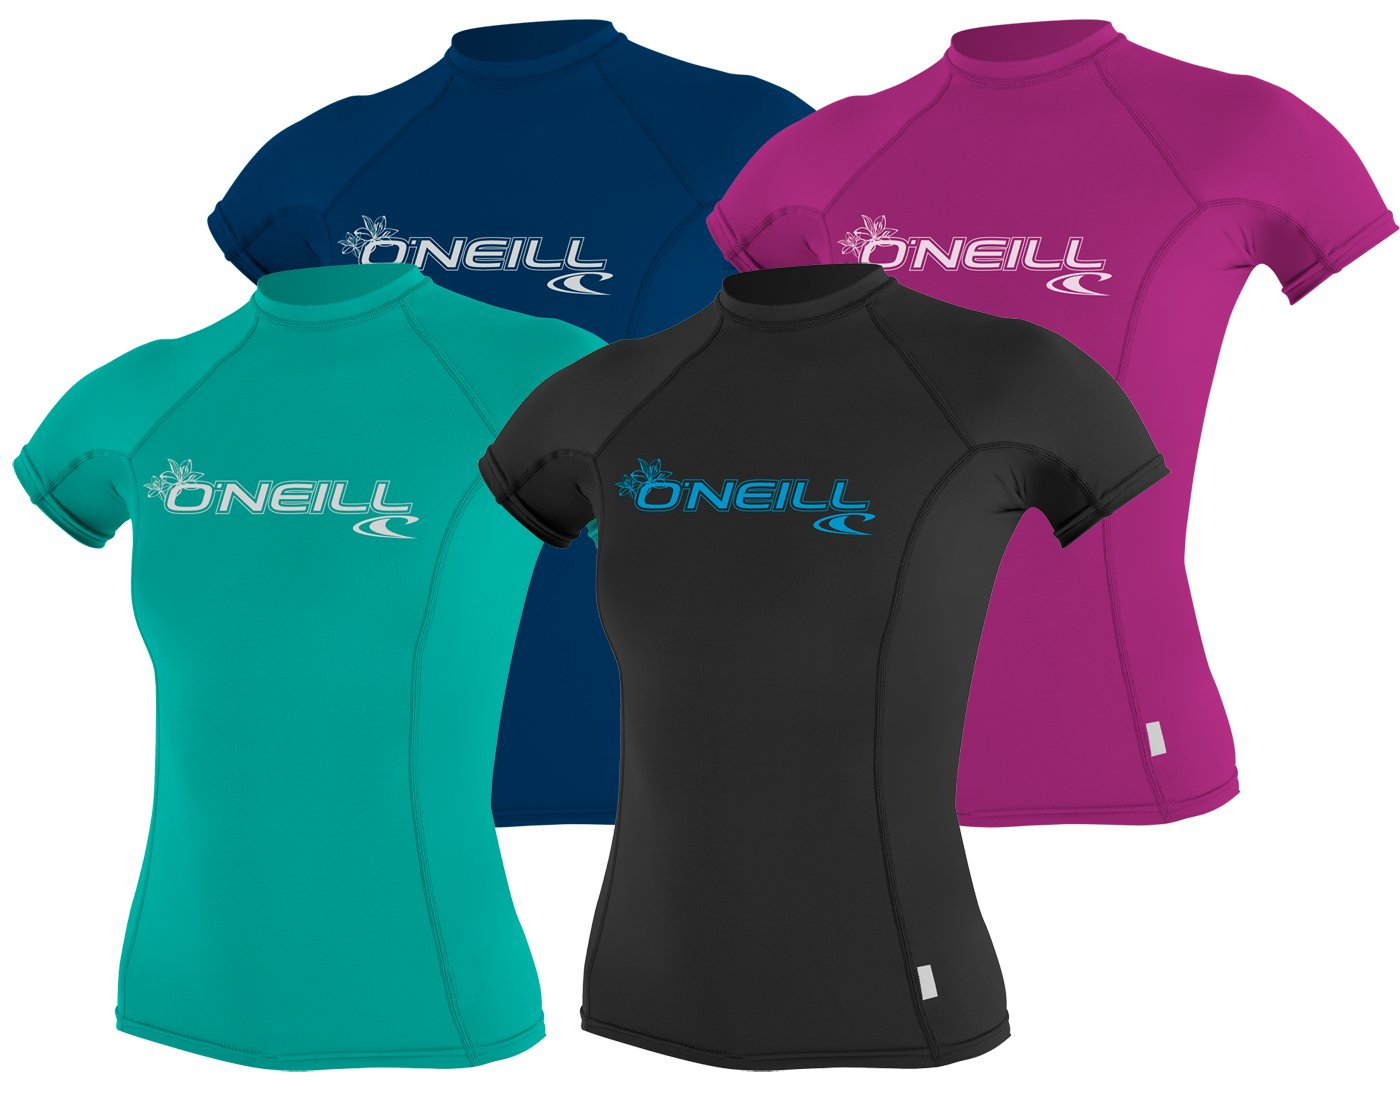 O'Neill Women's Basic 50+ Skins Short Sleeve Rash Guard, Deep Sea, Small by O'Neill Wetsuits